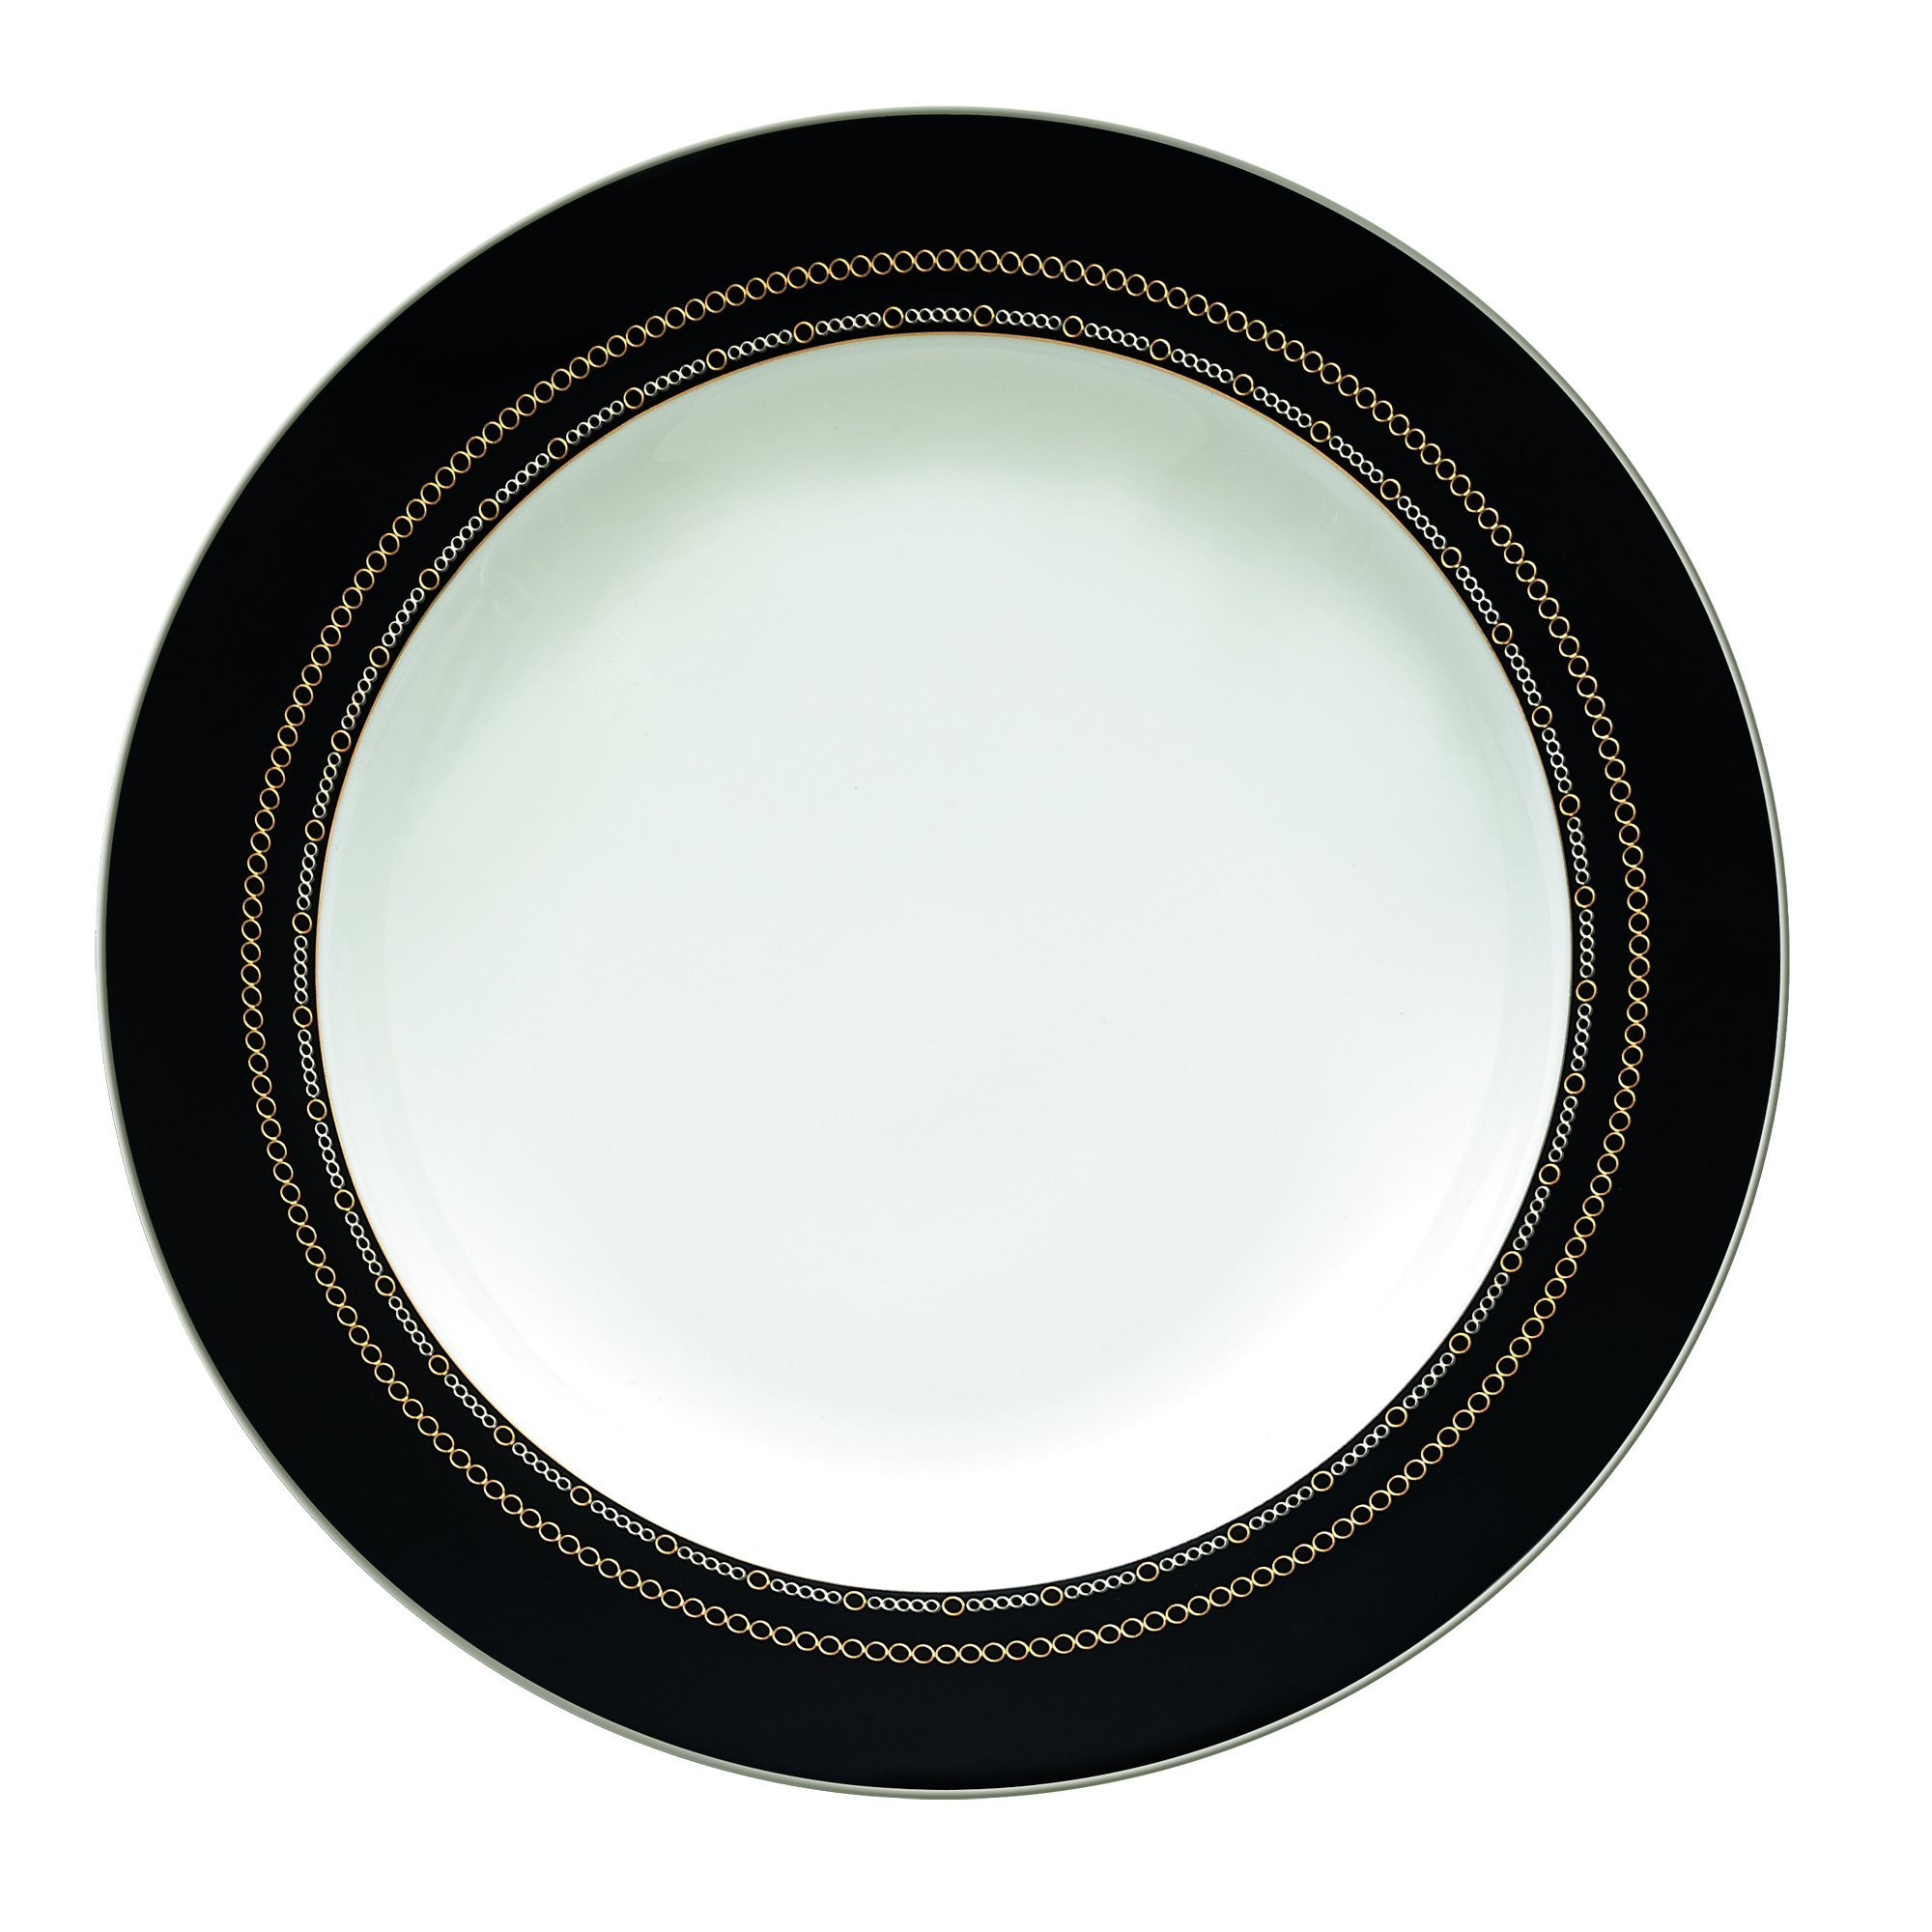 Wedgwood with Love Noir Rim Soup Plate, 9'', White